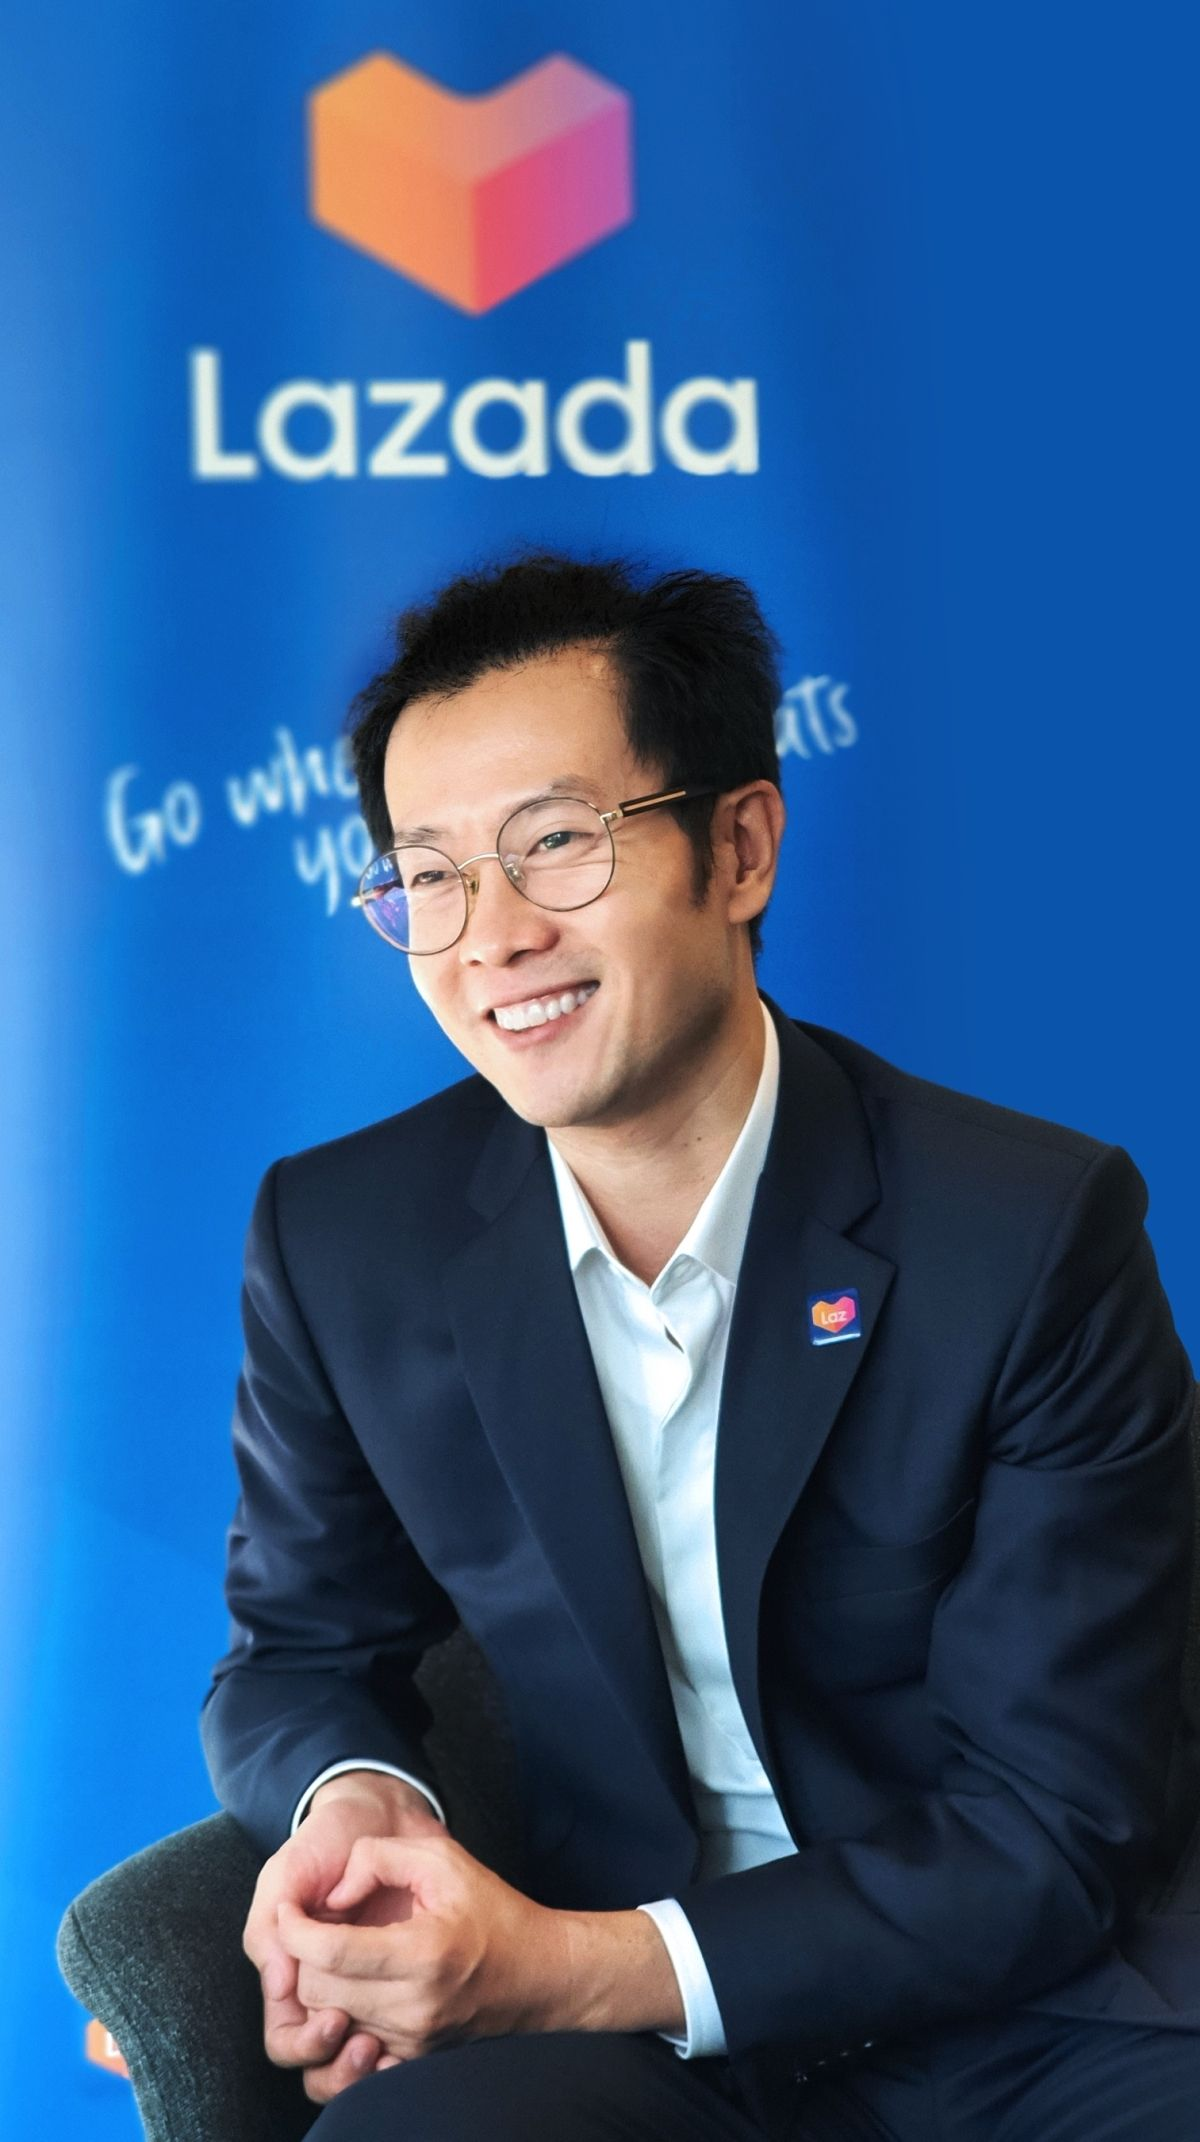 'Lazada Malaysia has been leading in deliveries and ready to manage peak-order volumes, ' said Lazada Malaysia chief executive officer Leo Chow.